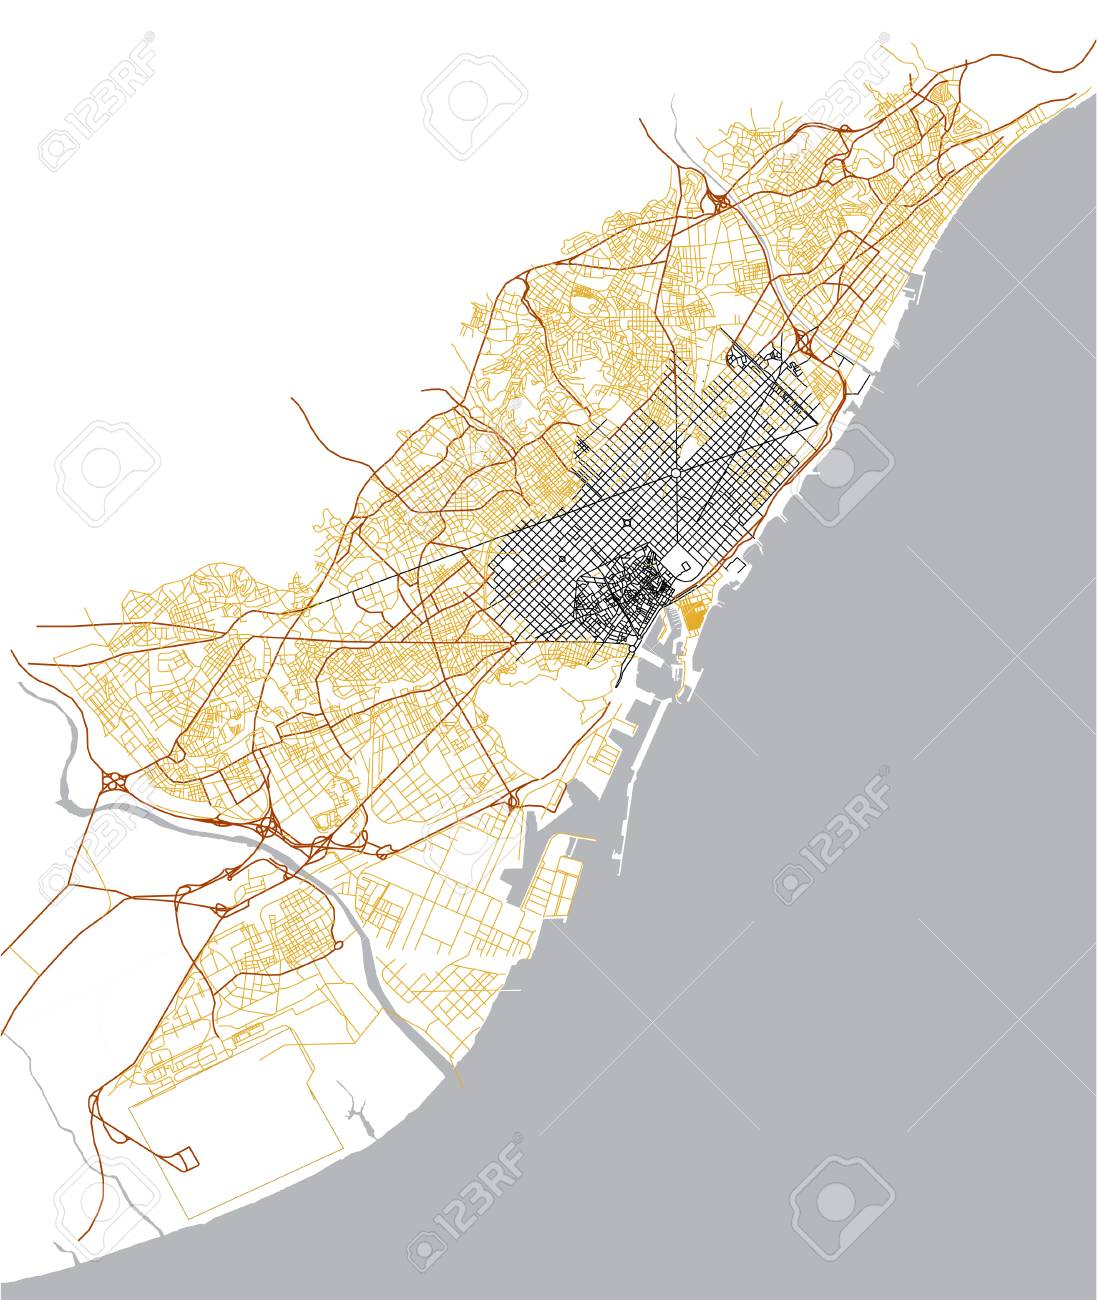 Illustration Map Of The City Of Barcelona Spain Catalonia Stock